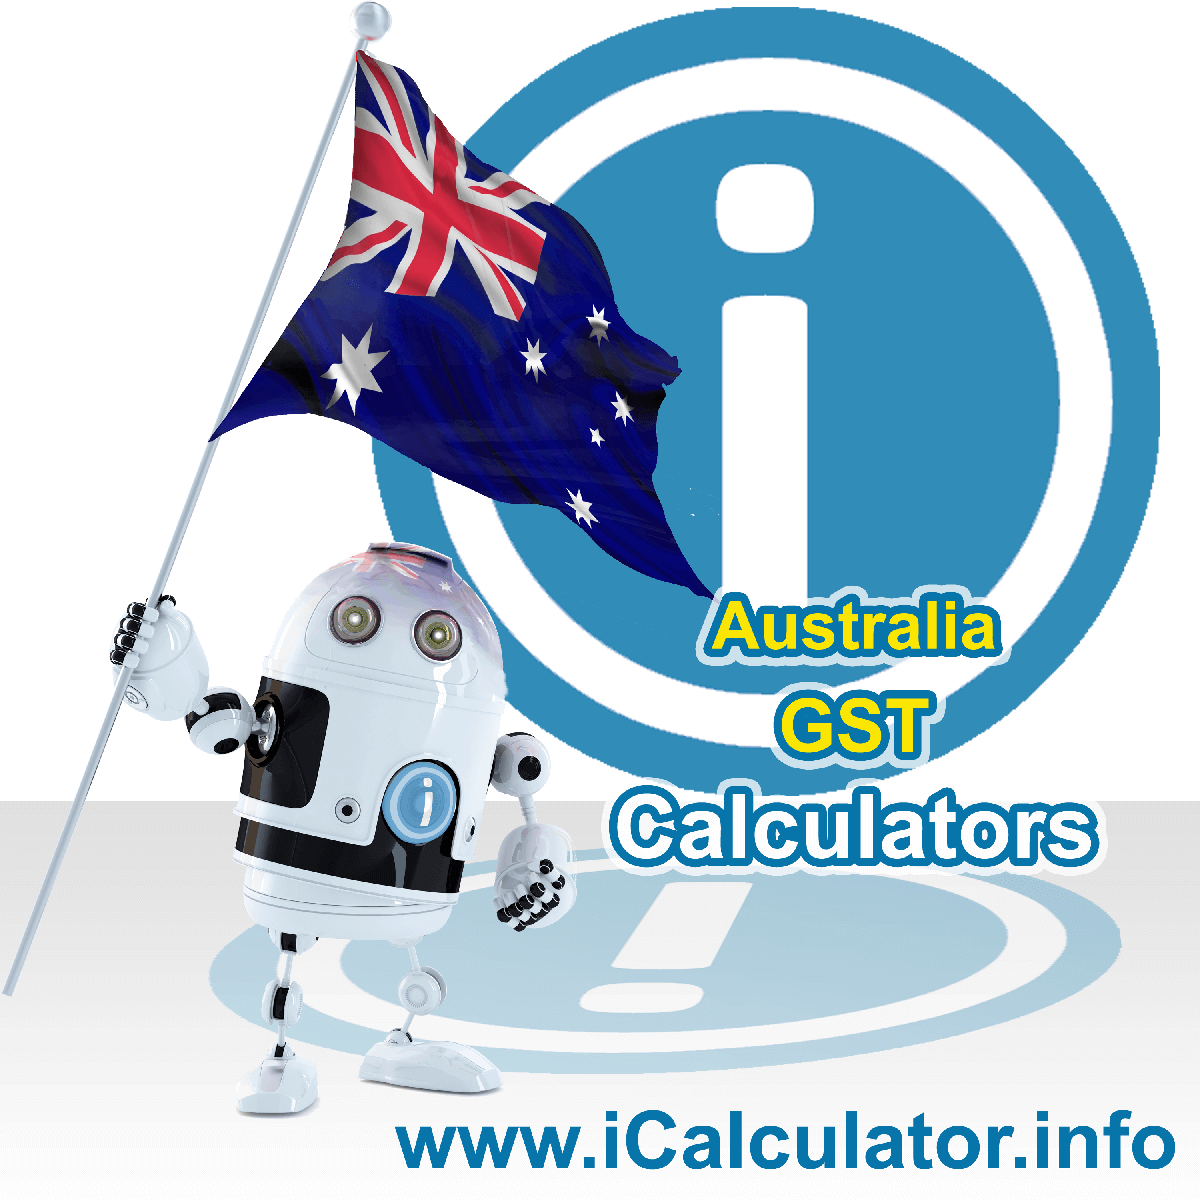 Australia GST Calculator. This image shows the Australia flag and information relating to the GST formula used for calculating goods and service Tax in Australia using the Australia GST Calculator in 2020